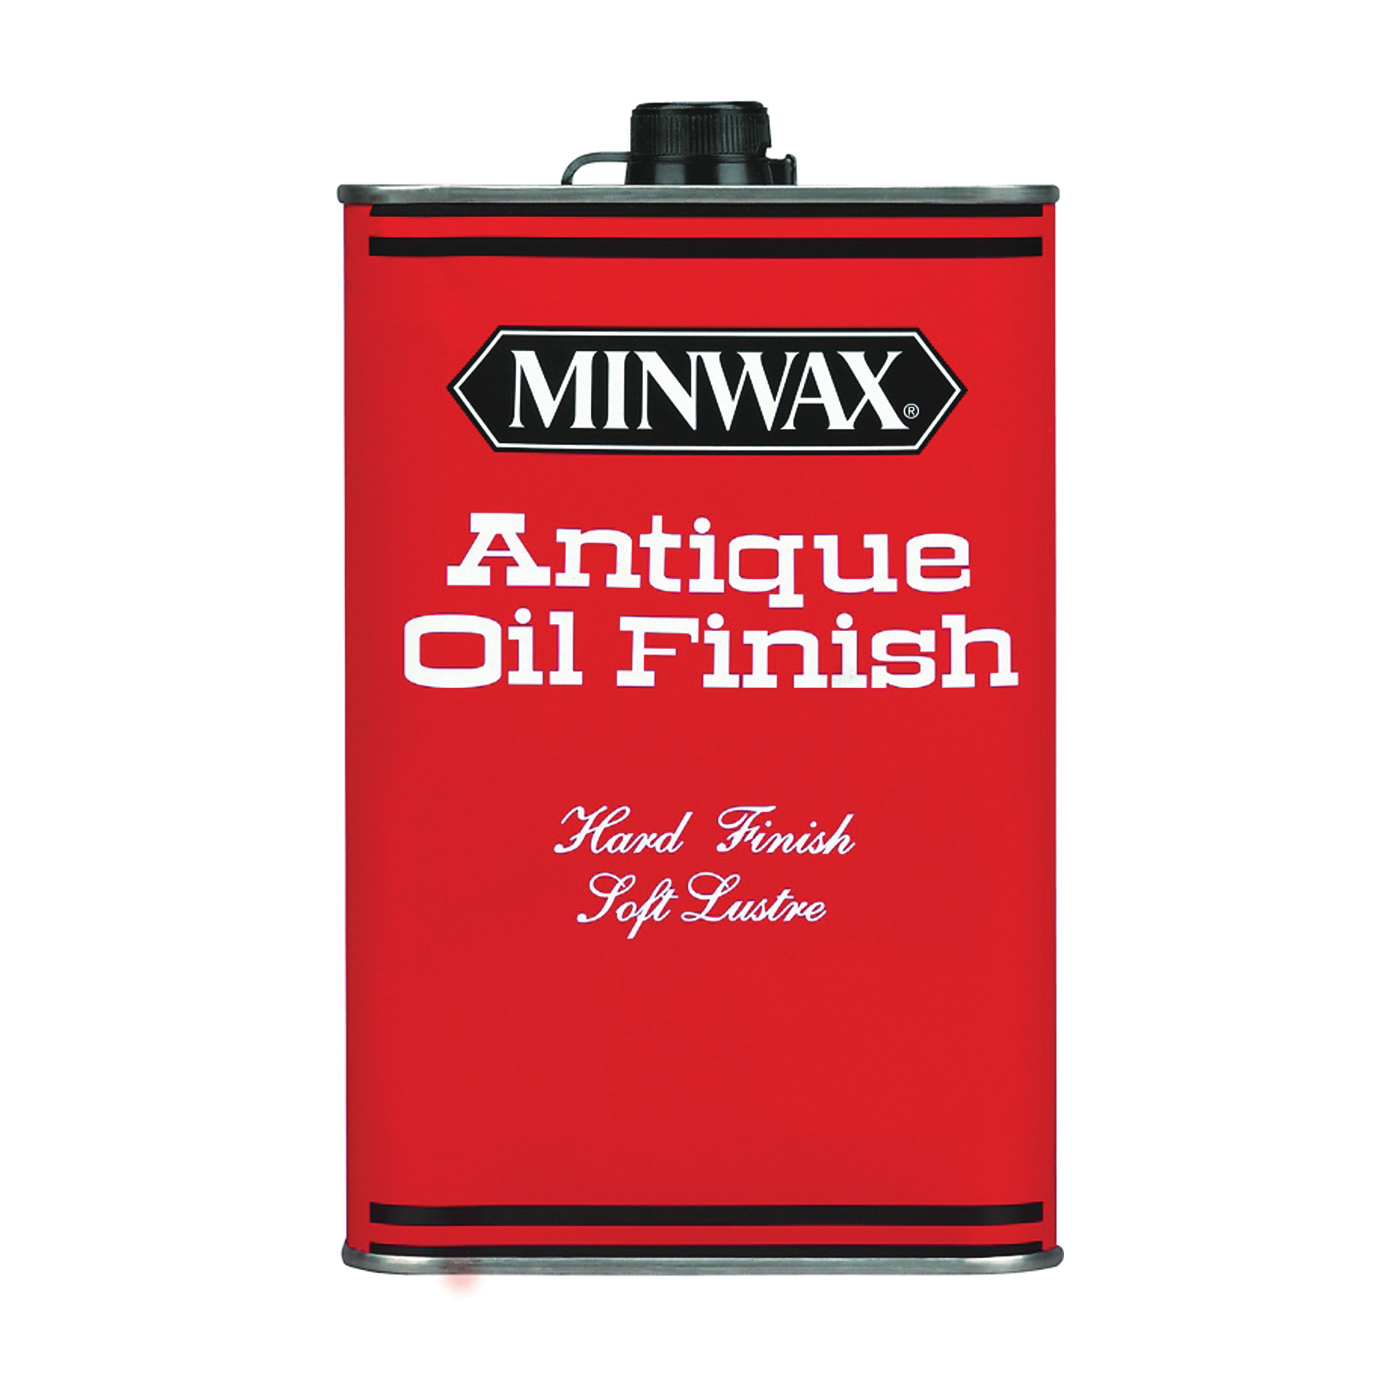 Picture of Minwax 47000000 Antique Oil Finish, Liquid, 1 pt, Can